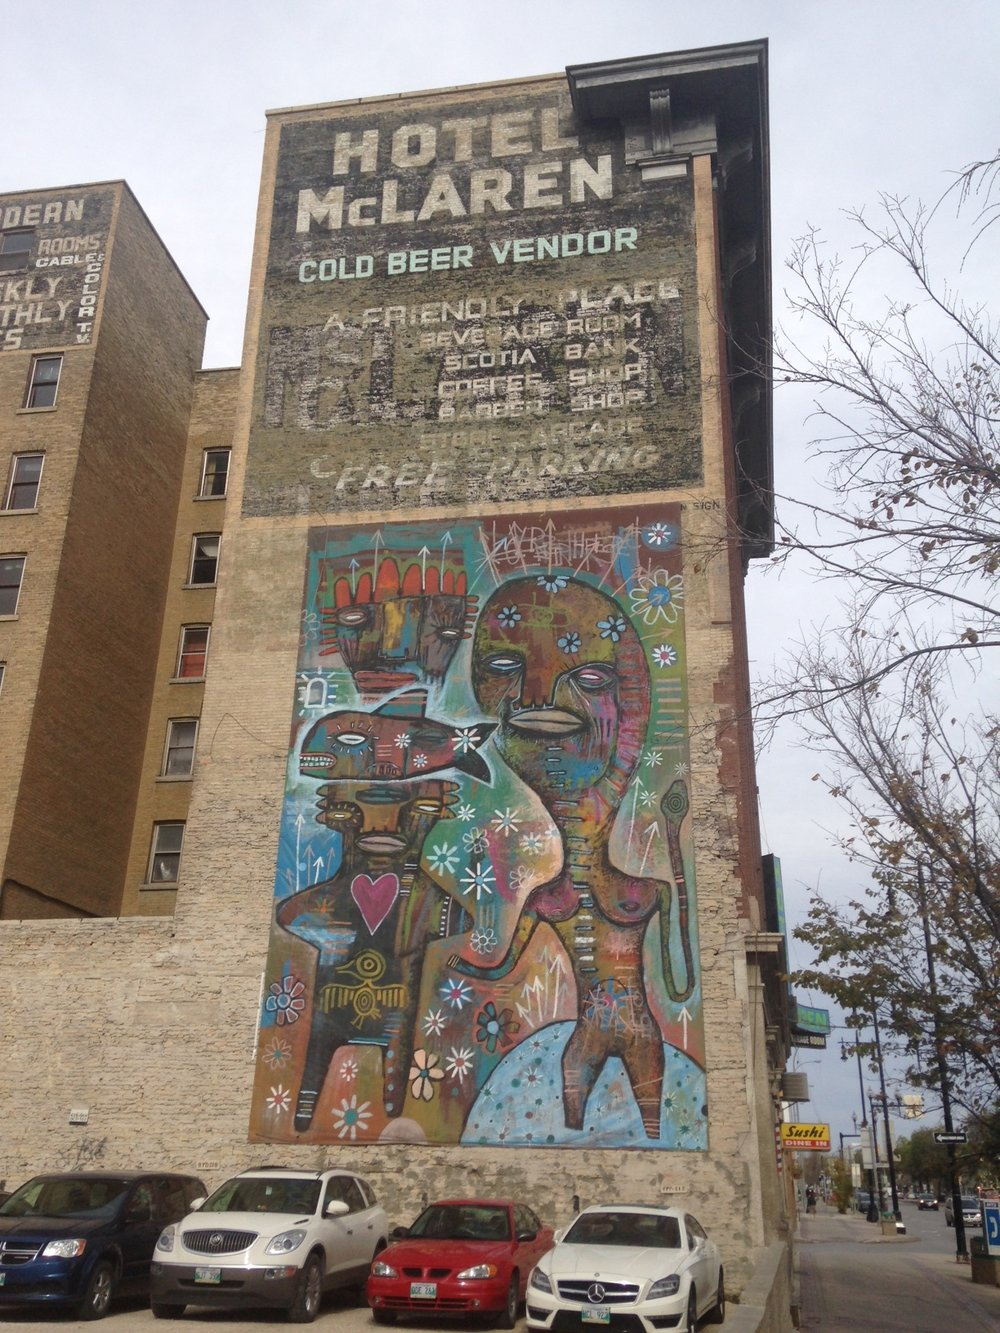 It is fun to explore downtown and discover the ghost signs and murals.